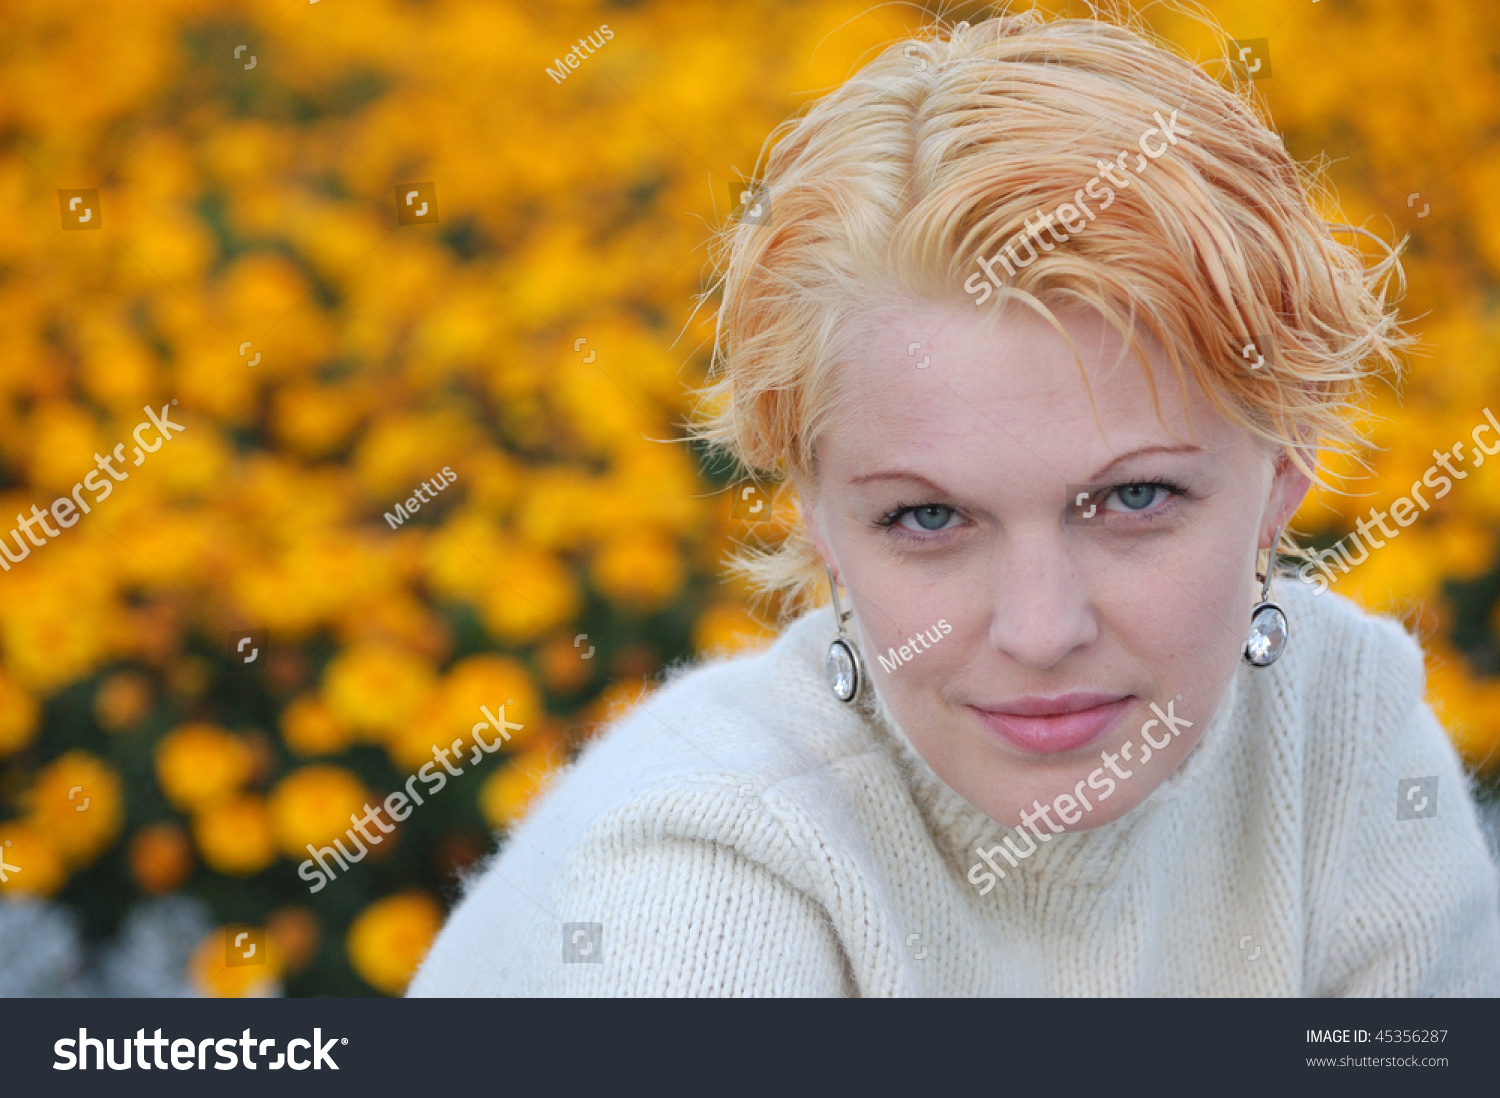 Androgynous look pretty blonde female portrait closeup with a lot of yellow flowers on background. Copyspace.